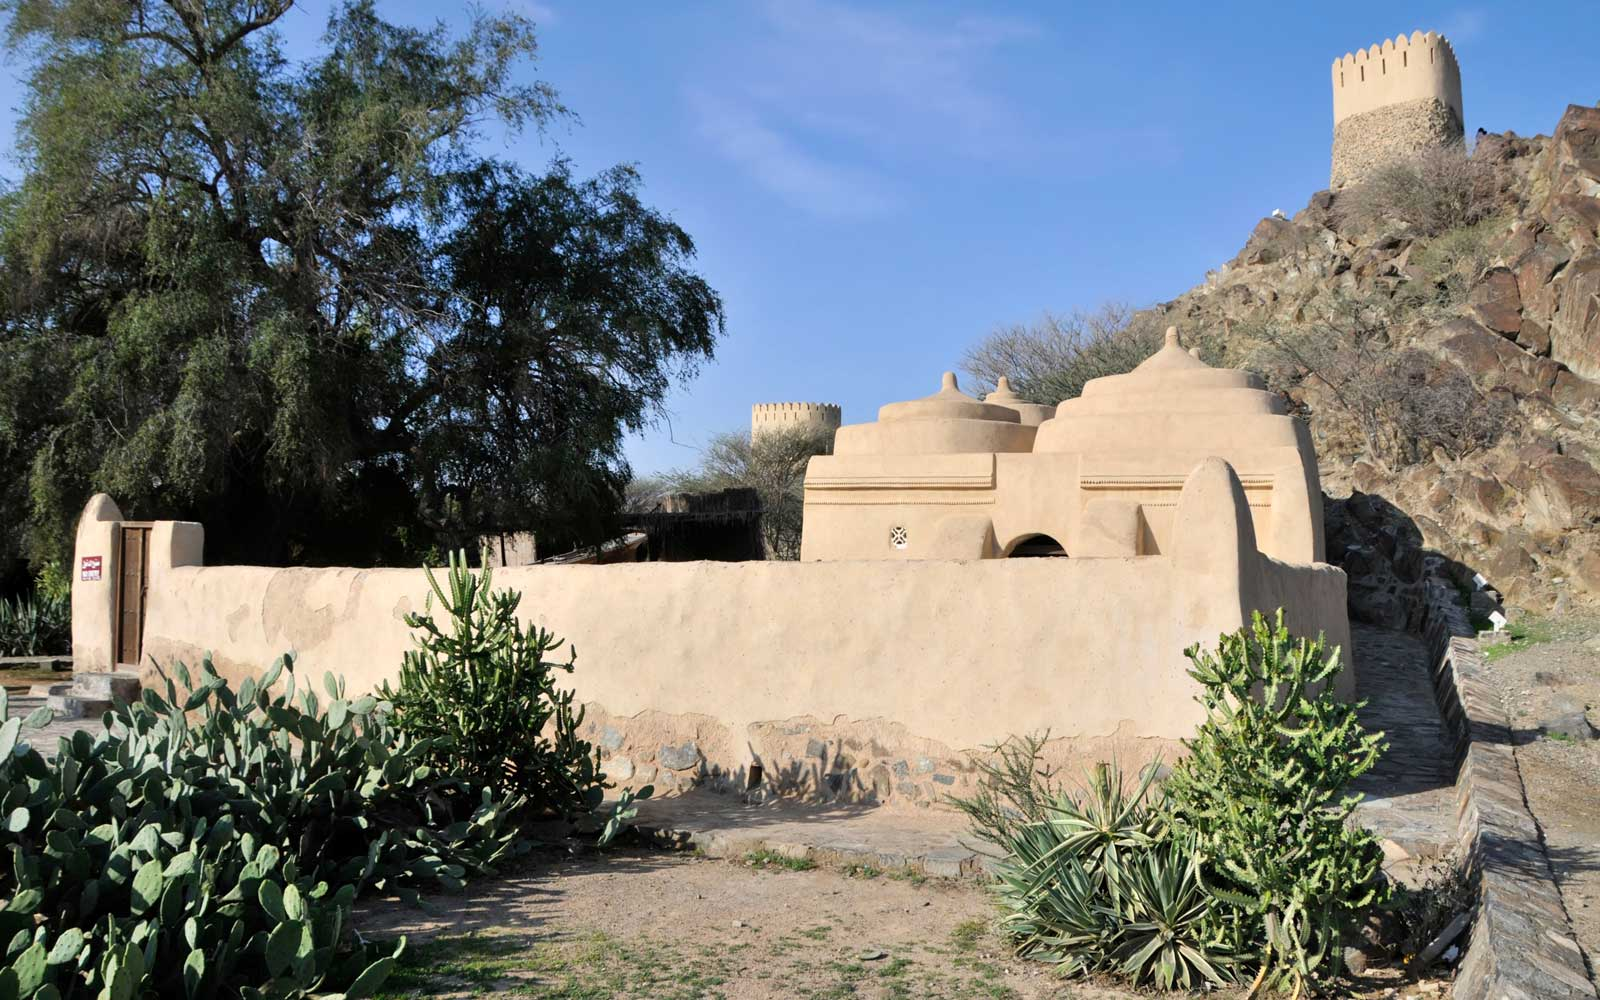 The emirate of Fujairah oldest mosque in the UAE at Badiyah with hill fort beyond also known as the Al Badiya